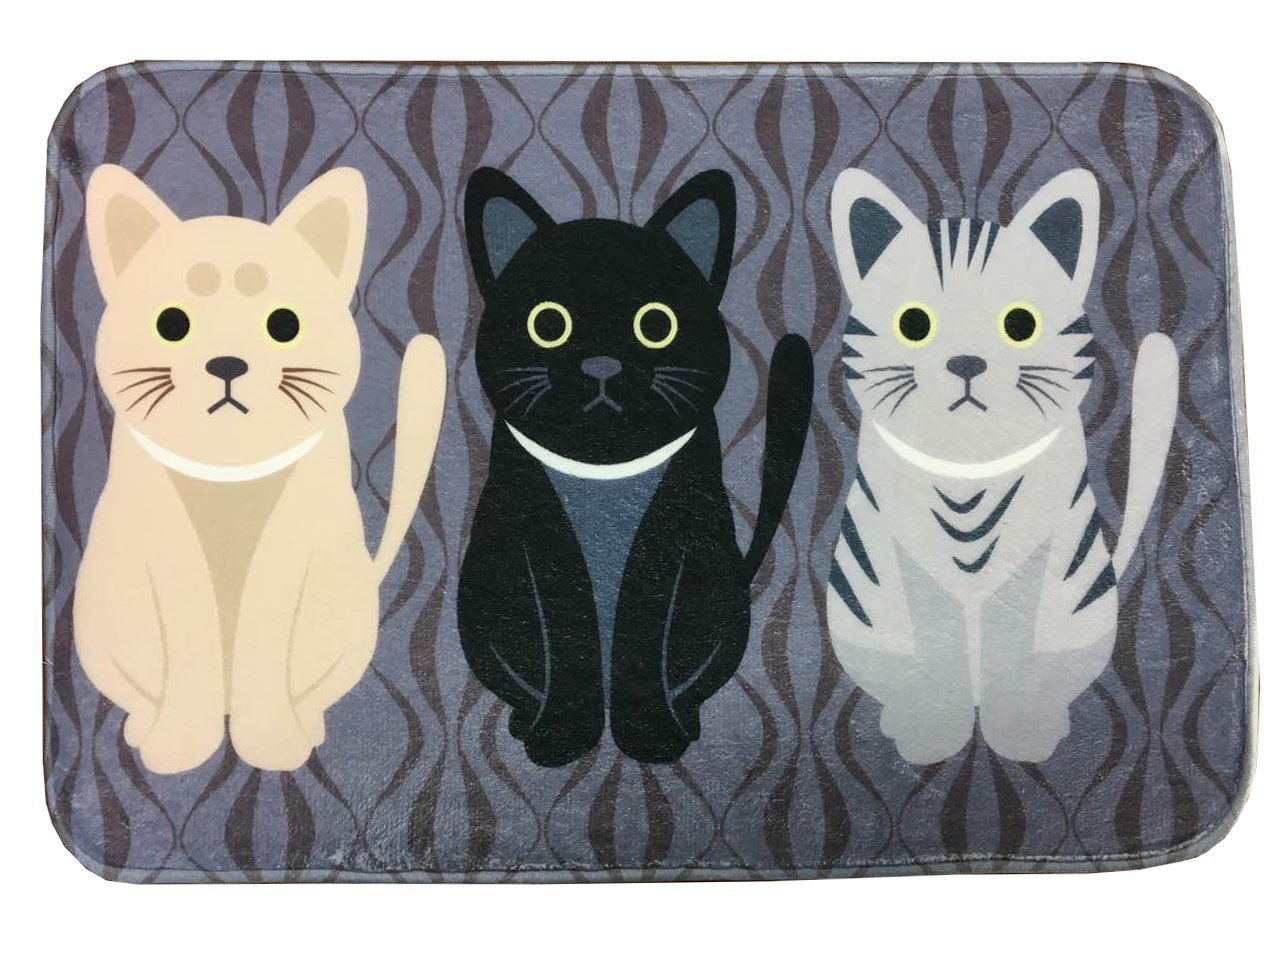 Fouriding Cute Cats Kitty Design Flannel Rectangle Rug Soft/Smooth Carpet/Mat/Area Rug for Stairway Toilet Floor Bedroom Living Room Bathroom Kitchen Home Decoration 3 Cats 40x60 cm